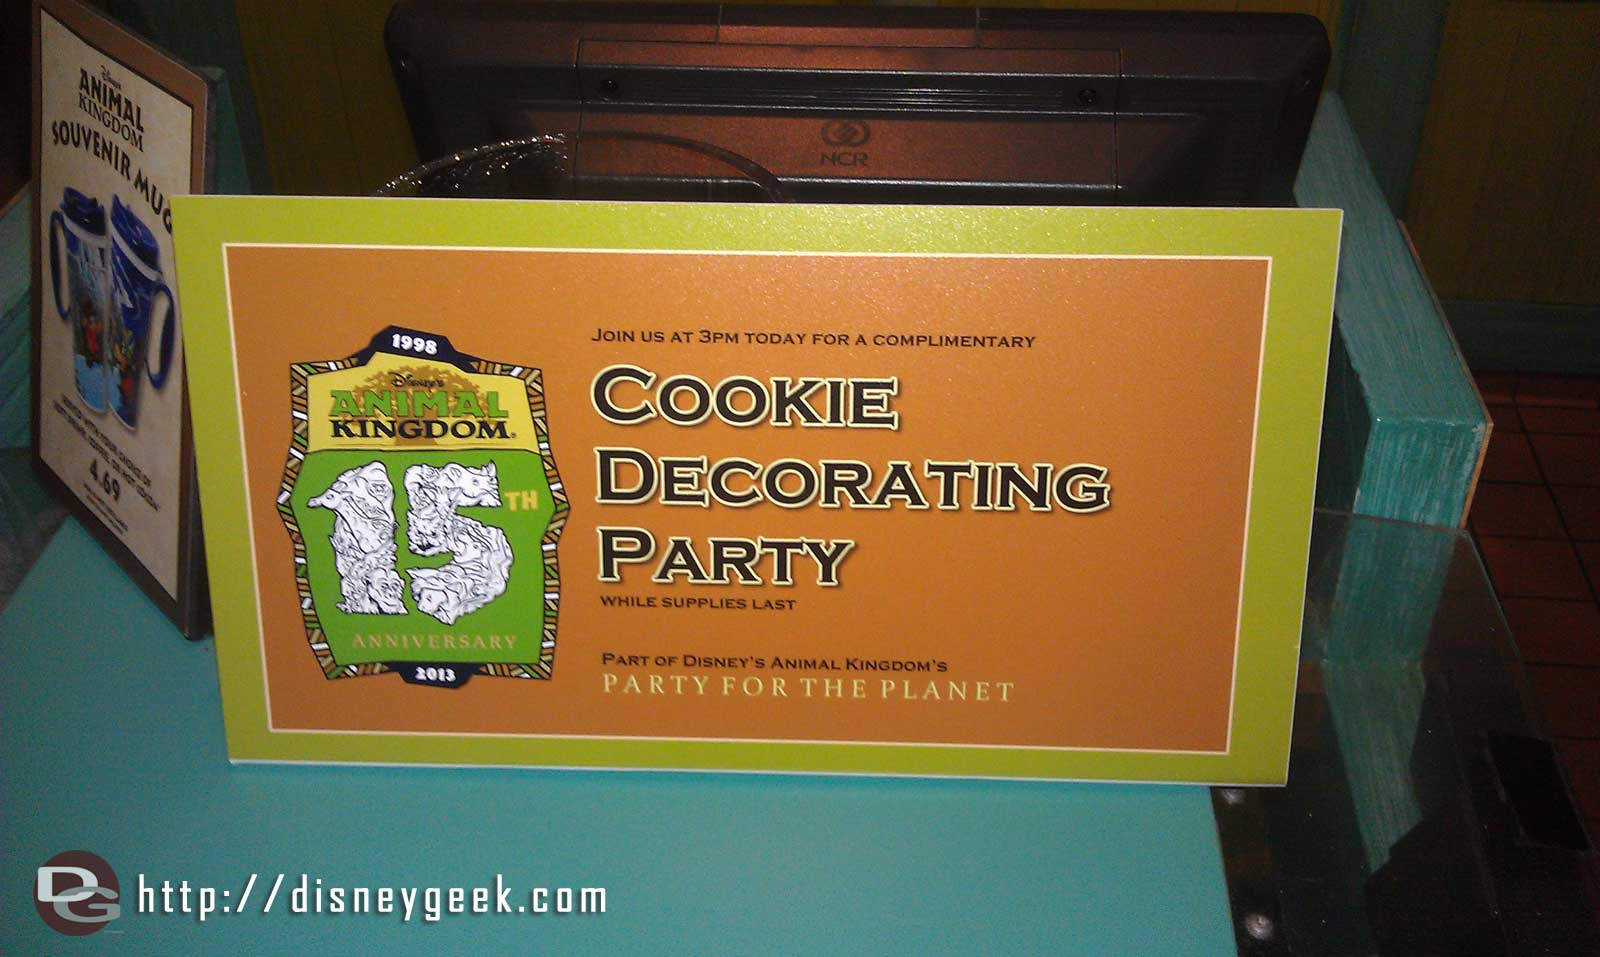 Complimentary cookie decorating at 3 pm today for #DAK15